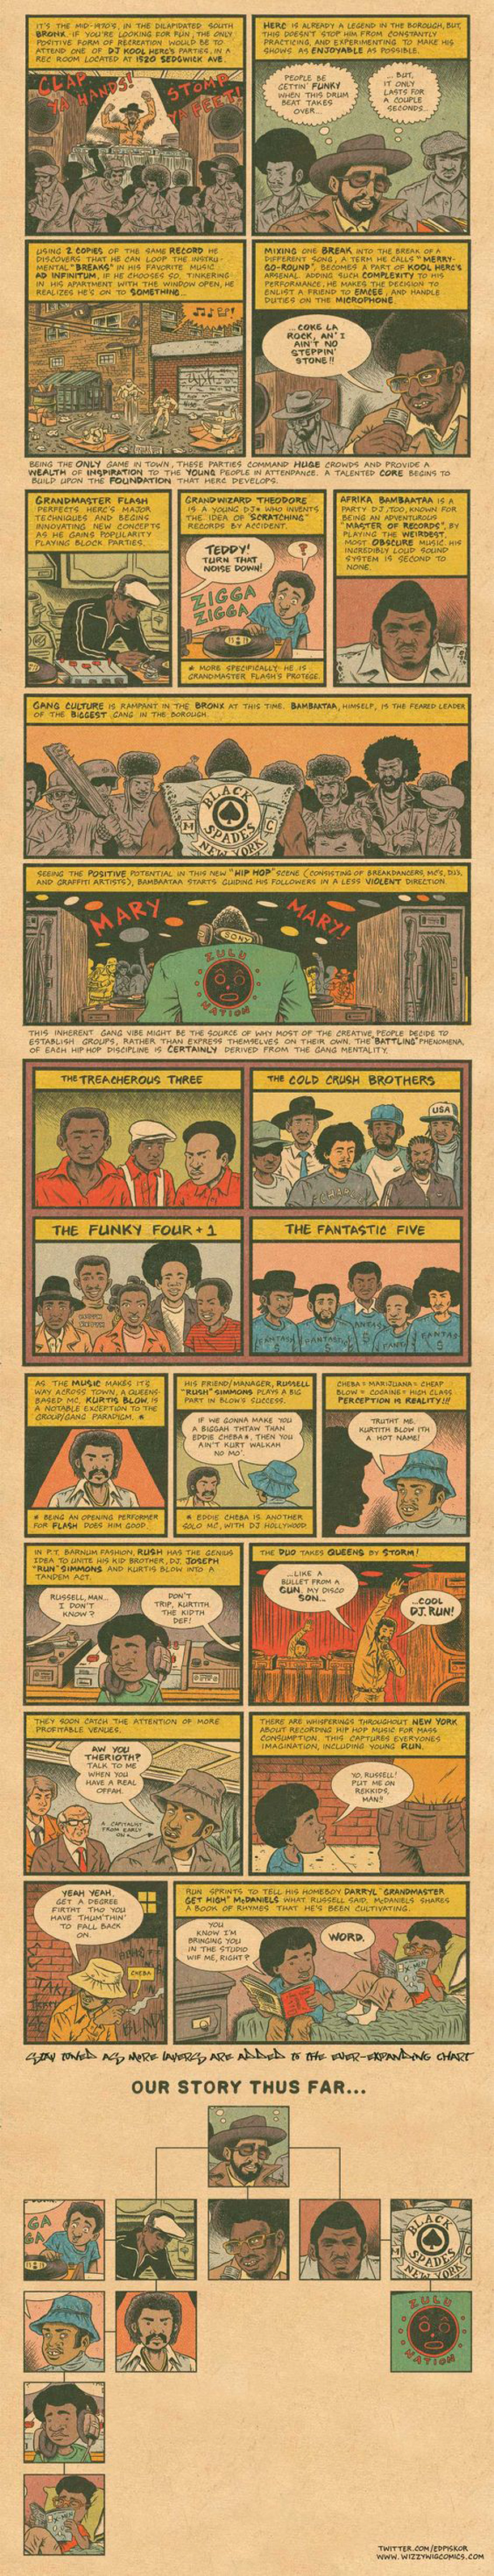 """Hip Hop Family Tree 1975-1983"" di Ed Piskor"